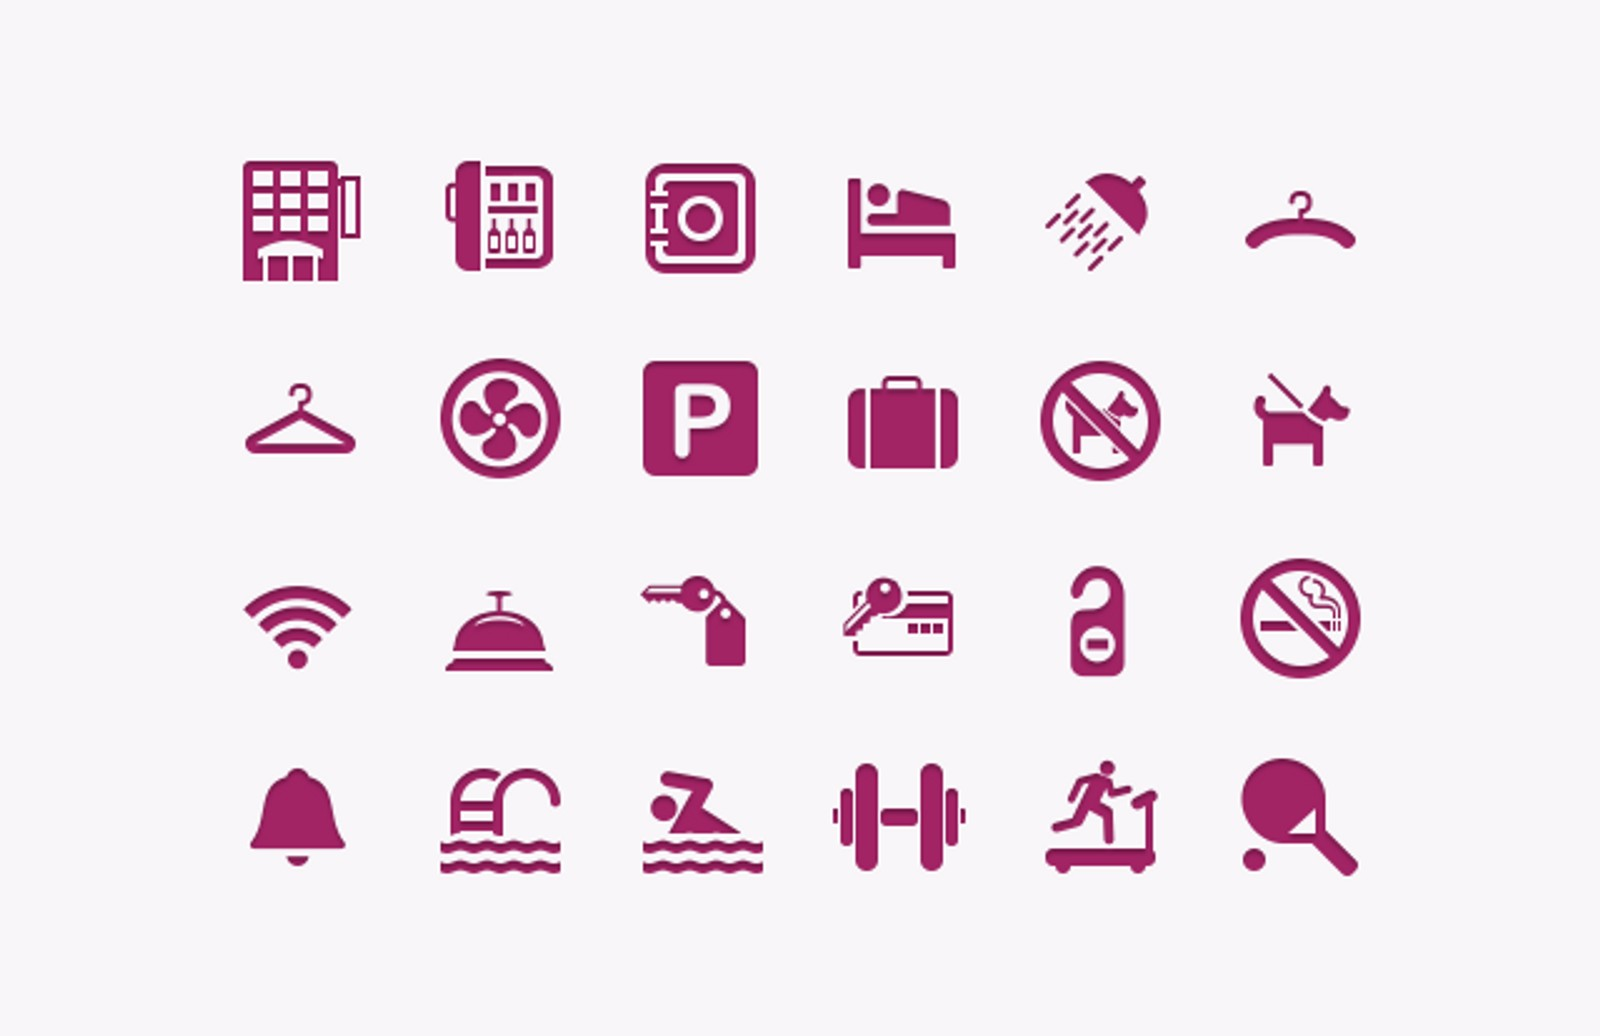 Hotel   Restaurant  Icons  Preview1A